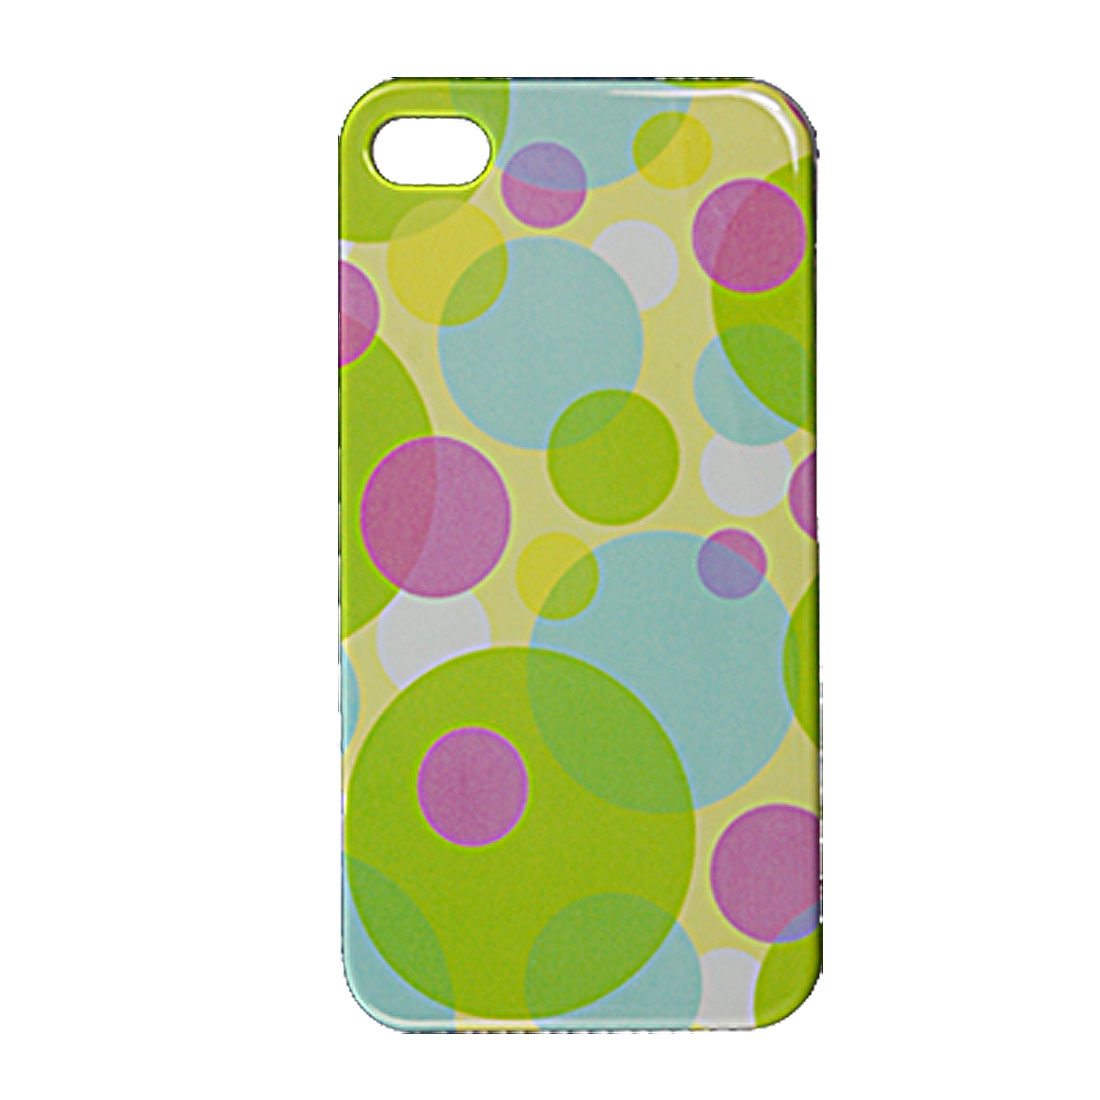 Colorful Dotted Print Plastic IMD Back Shell for iPhone 4 4G